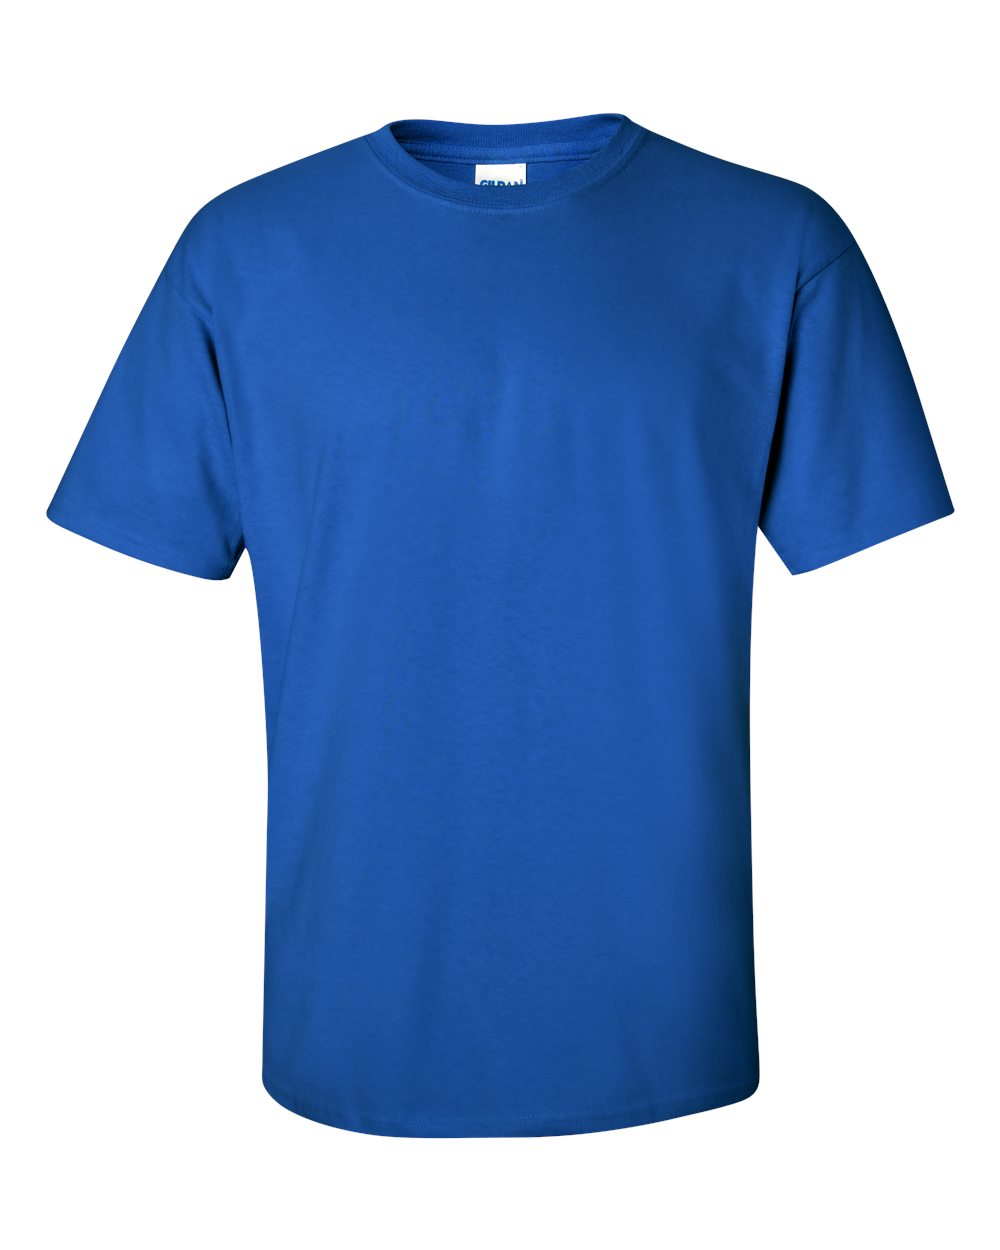 Gildan_2000_Royal_Front_High.jpg